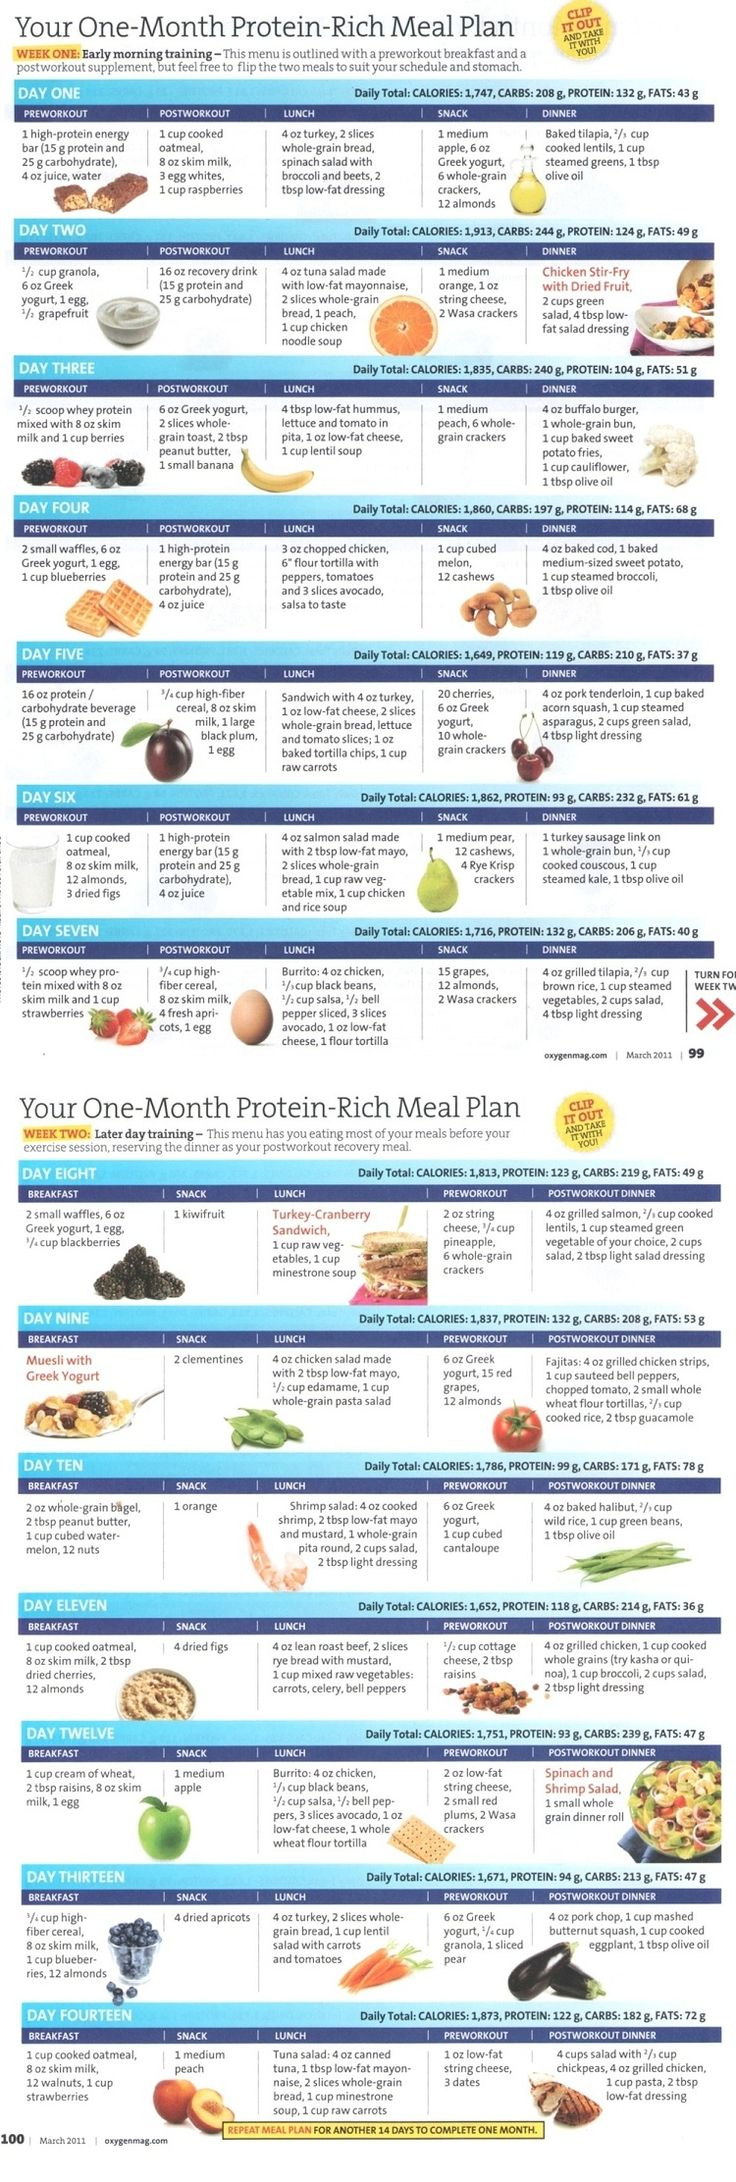 more protein meal ideas..... or check out this link: http://www.dukehealth.org/services/weight_loss_surgery/care_guides/bariatric_surgery_diet_manual/the_recommended_diet_following_bariatric_surgery *** Visit our website now!